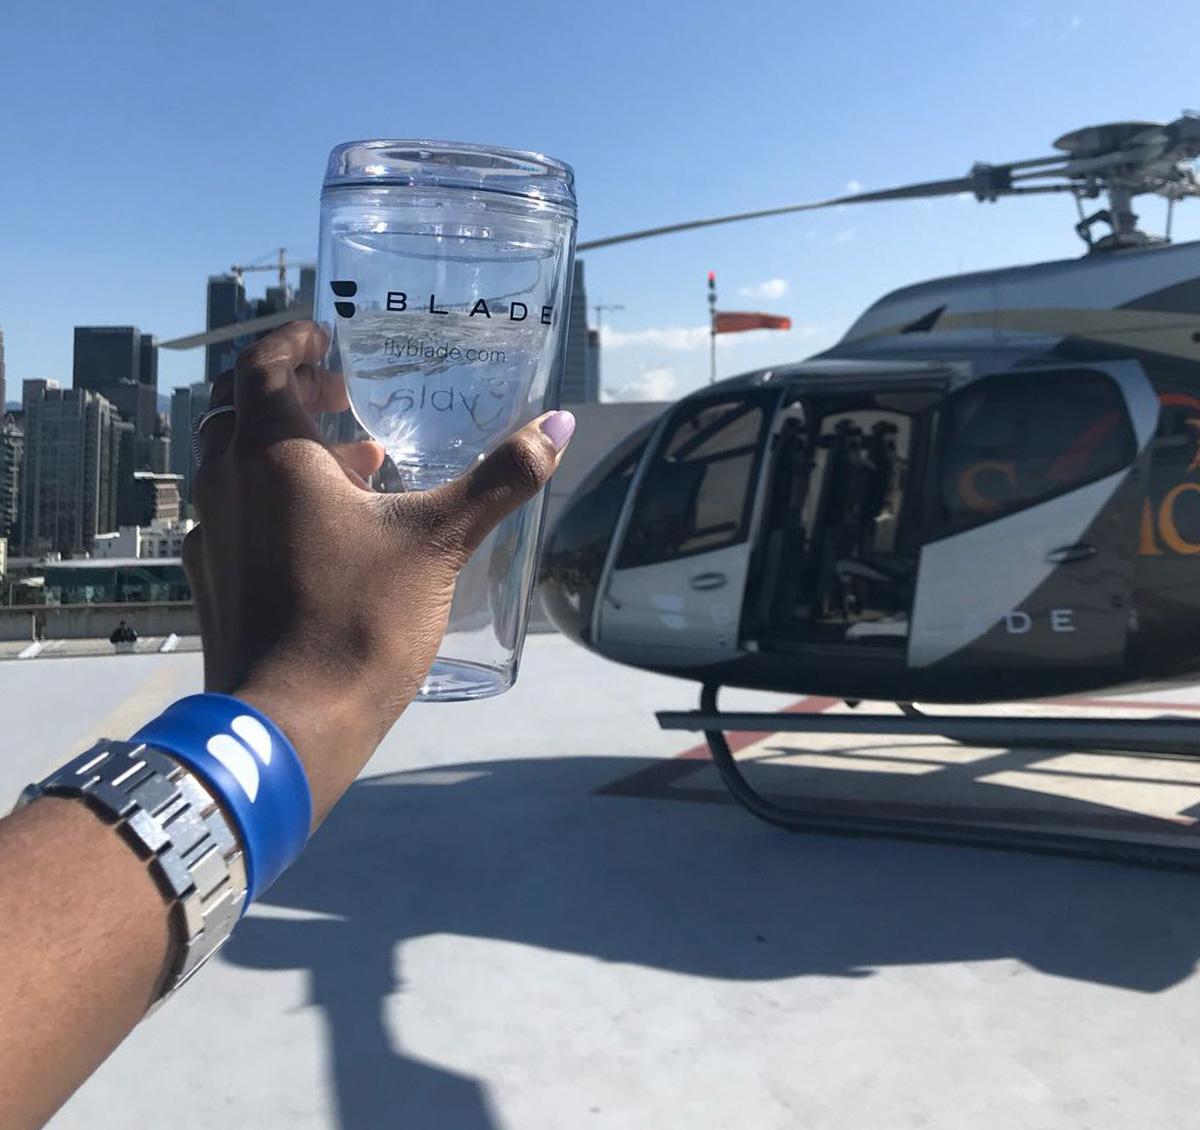 Fly to Coachella in style with Blade's Helicopter Service and Tequila Casa Dragones